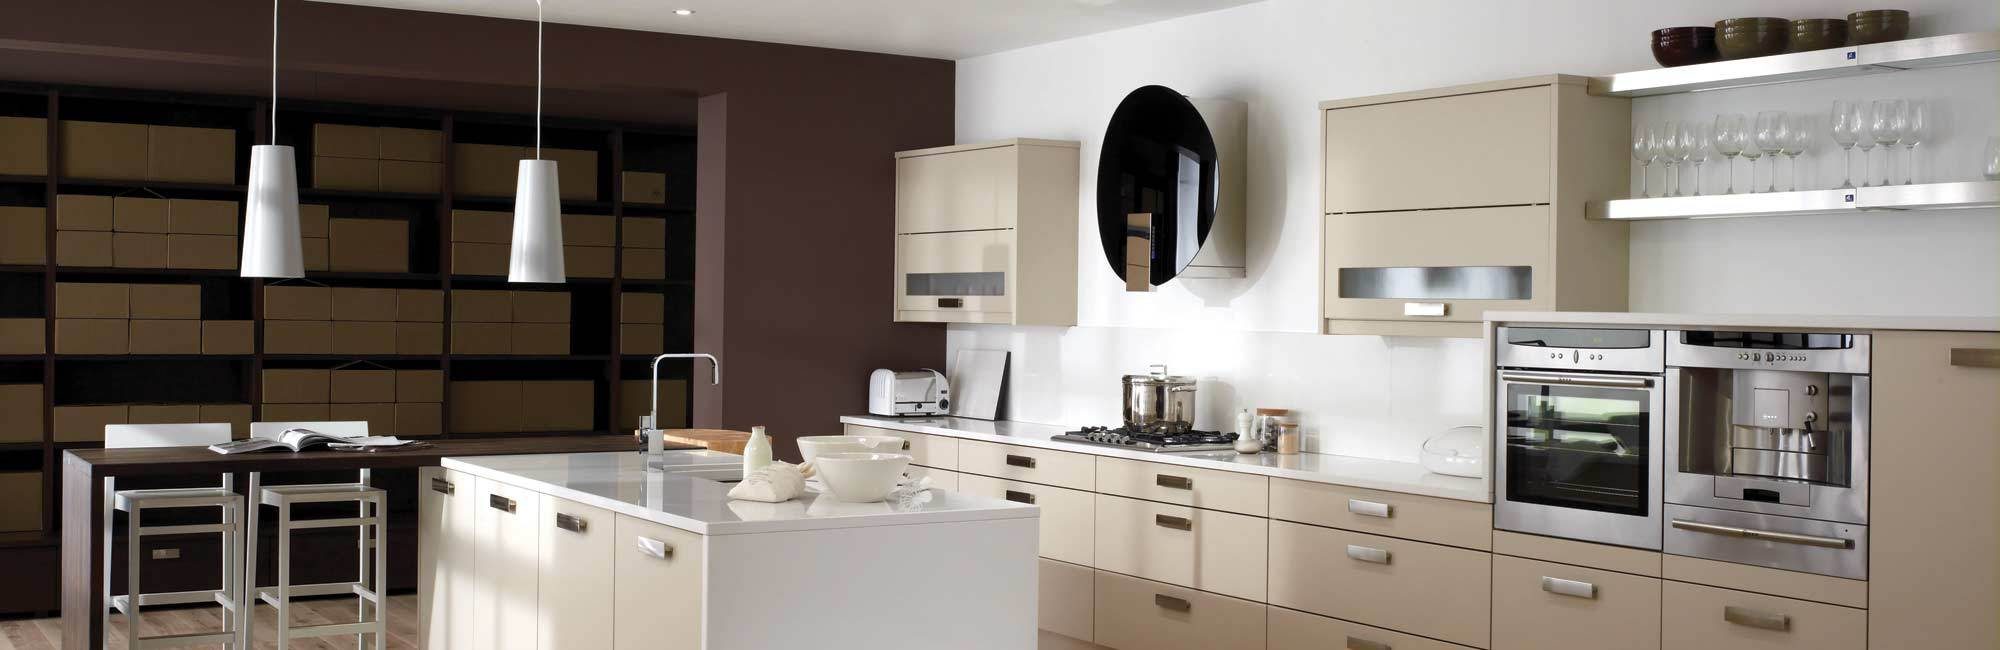 Contemporary Dream Kitchens andrew collins kitchen design | dream kitchen | lee-on-the-solent